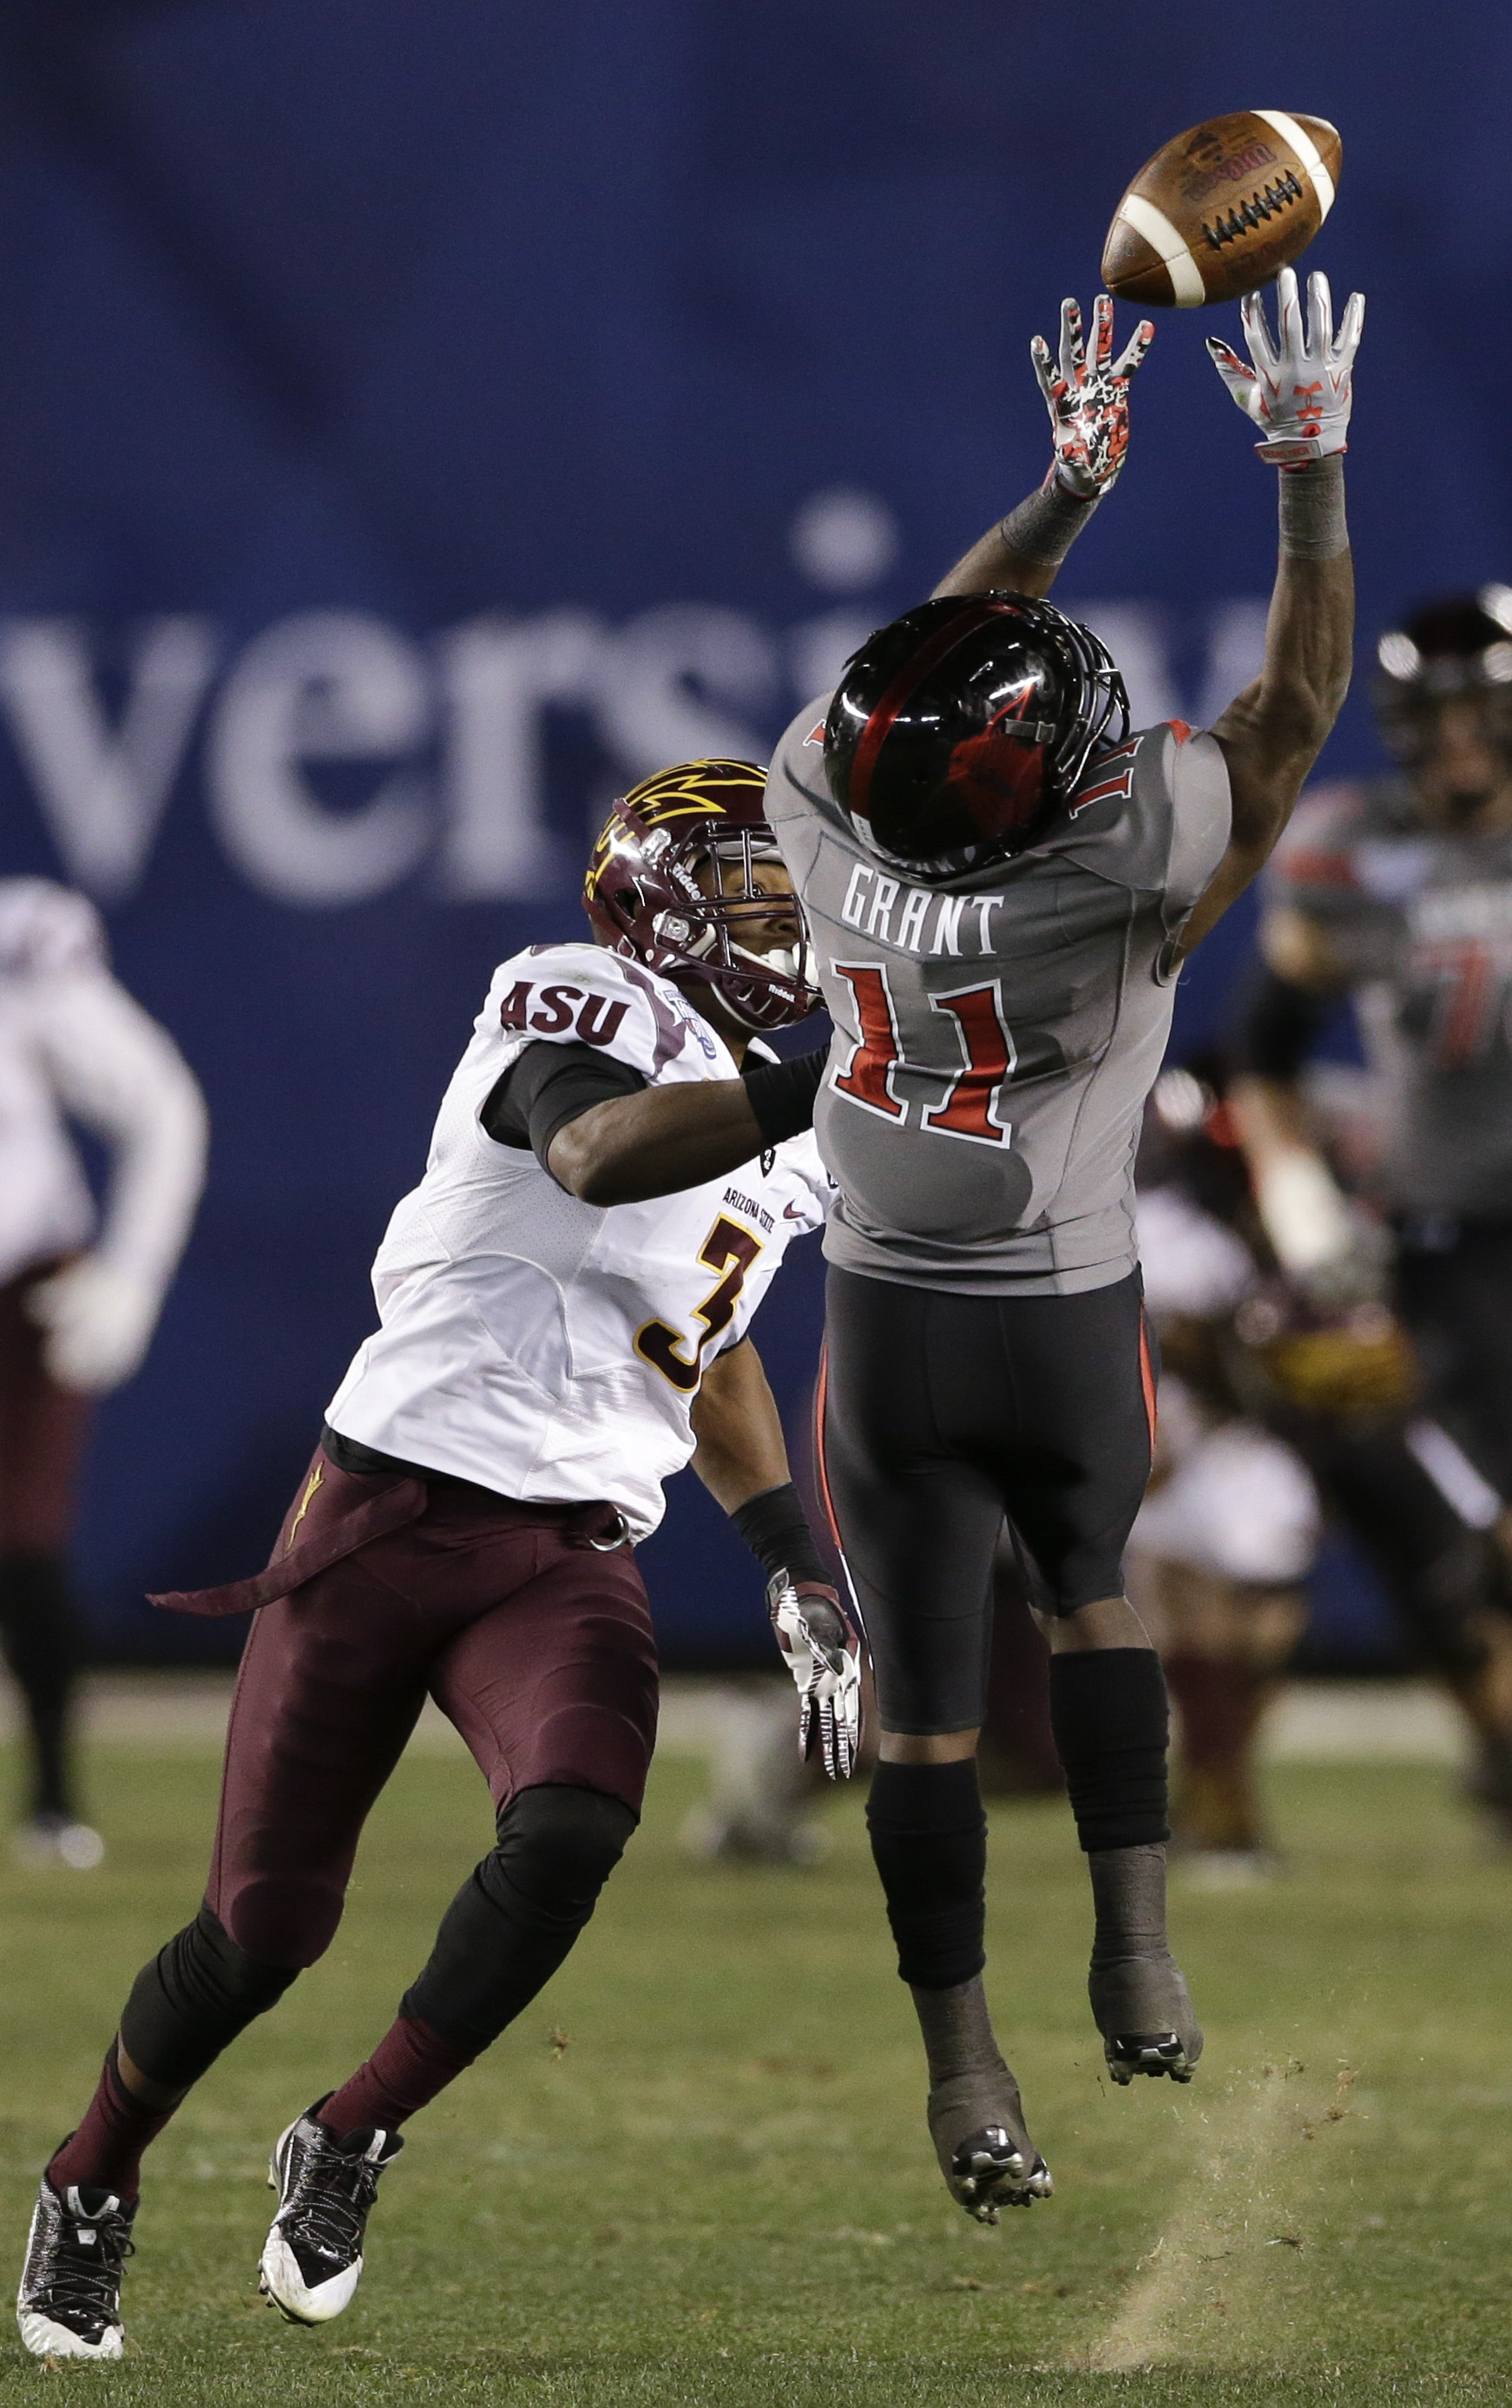 Texas Tech wide receiver Jakeem Grant (11) can't hold on to a pass as Arizona State defensive back Damarious Randall, left, defends during the second half of the Holiday Bowl NCAA college football game Monday, Dec. 30, 2013, in San Diego